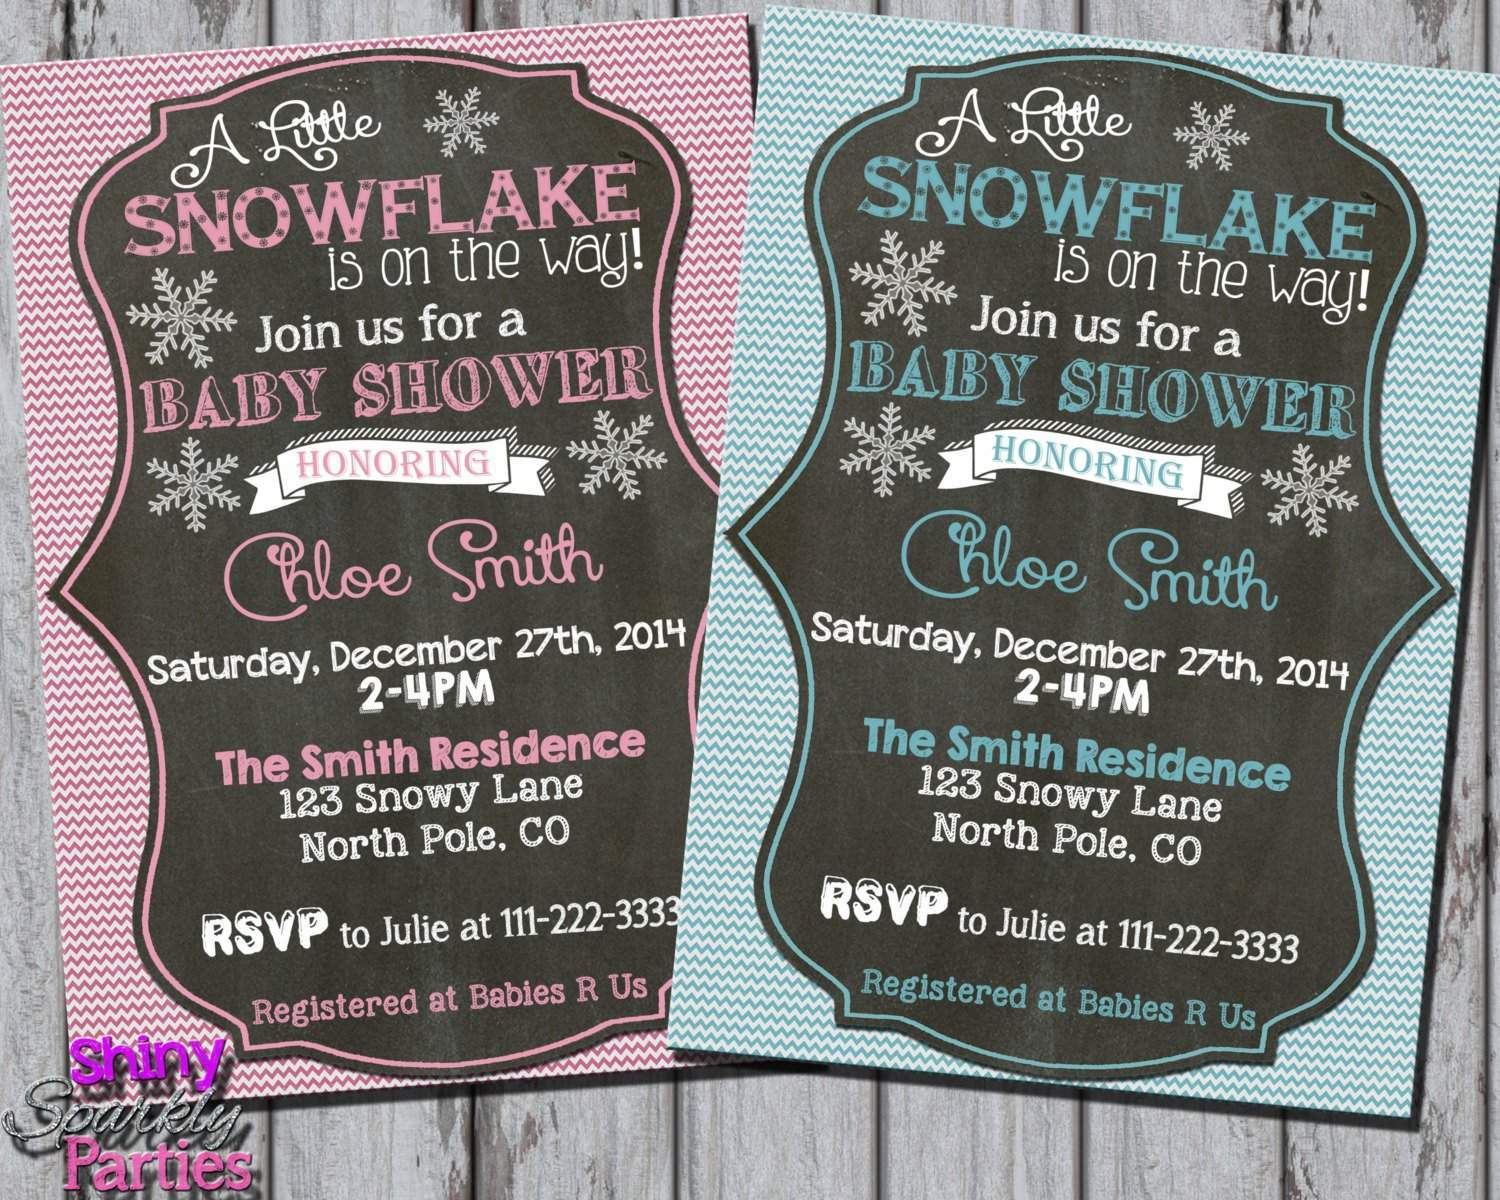 Little Snowflake Winter Baby Shower Invitation - Forever Fab Boutique